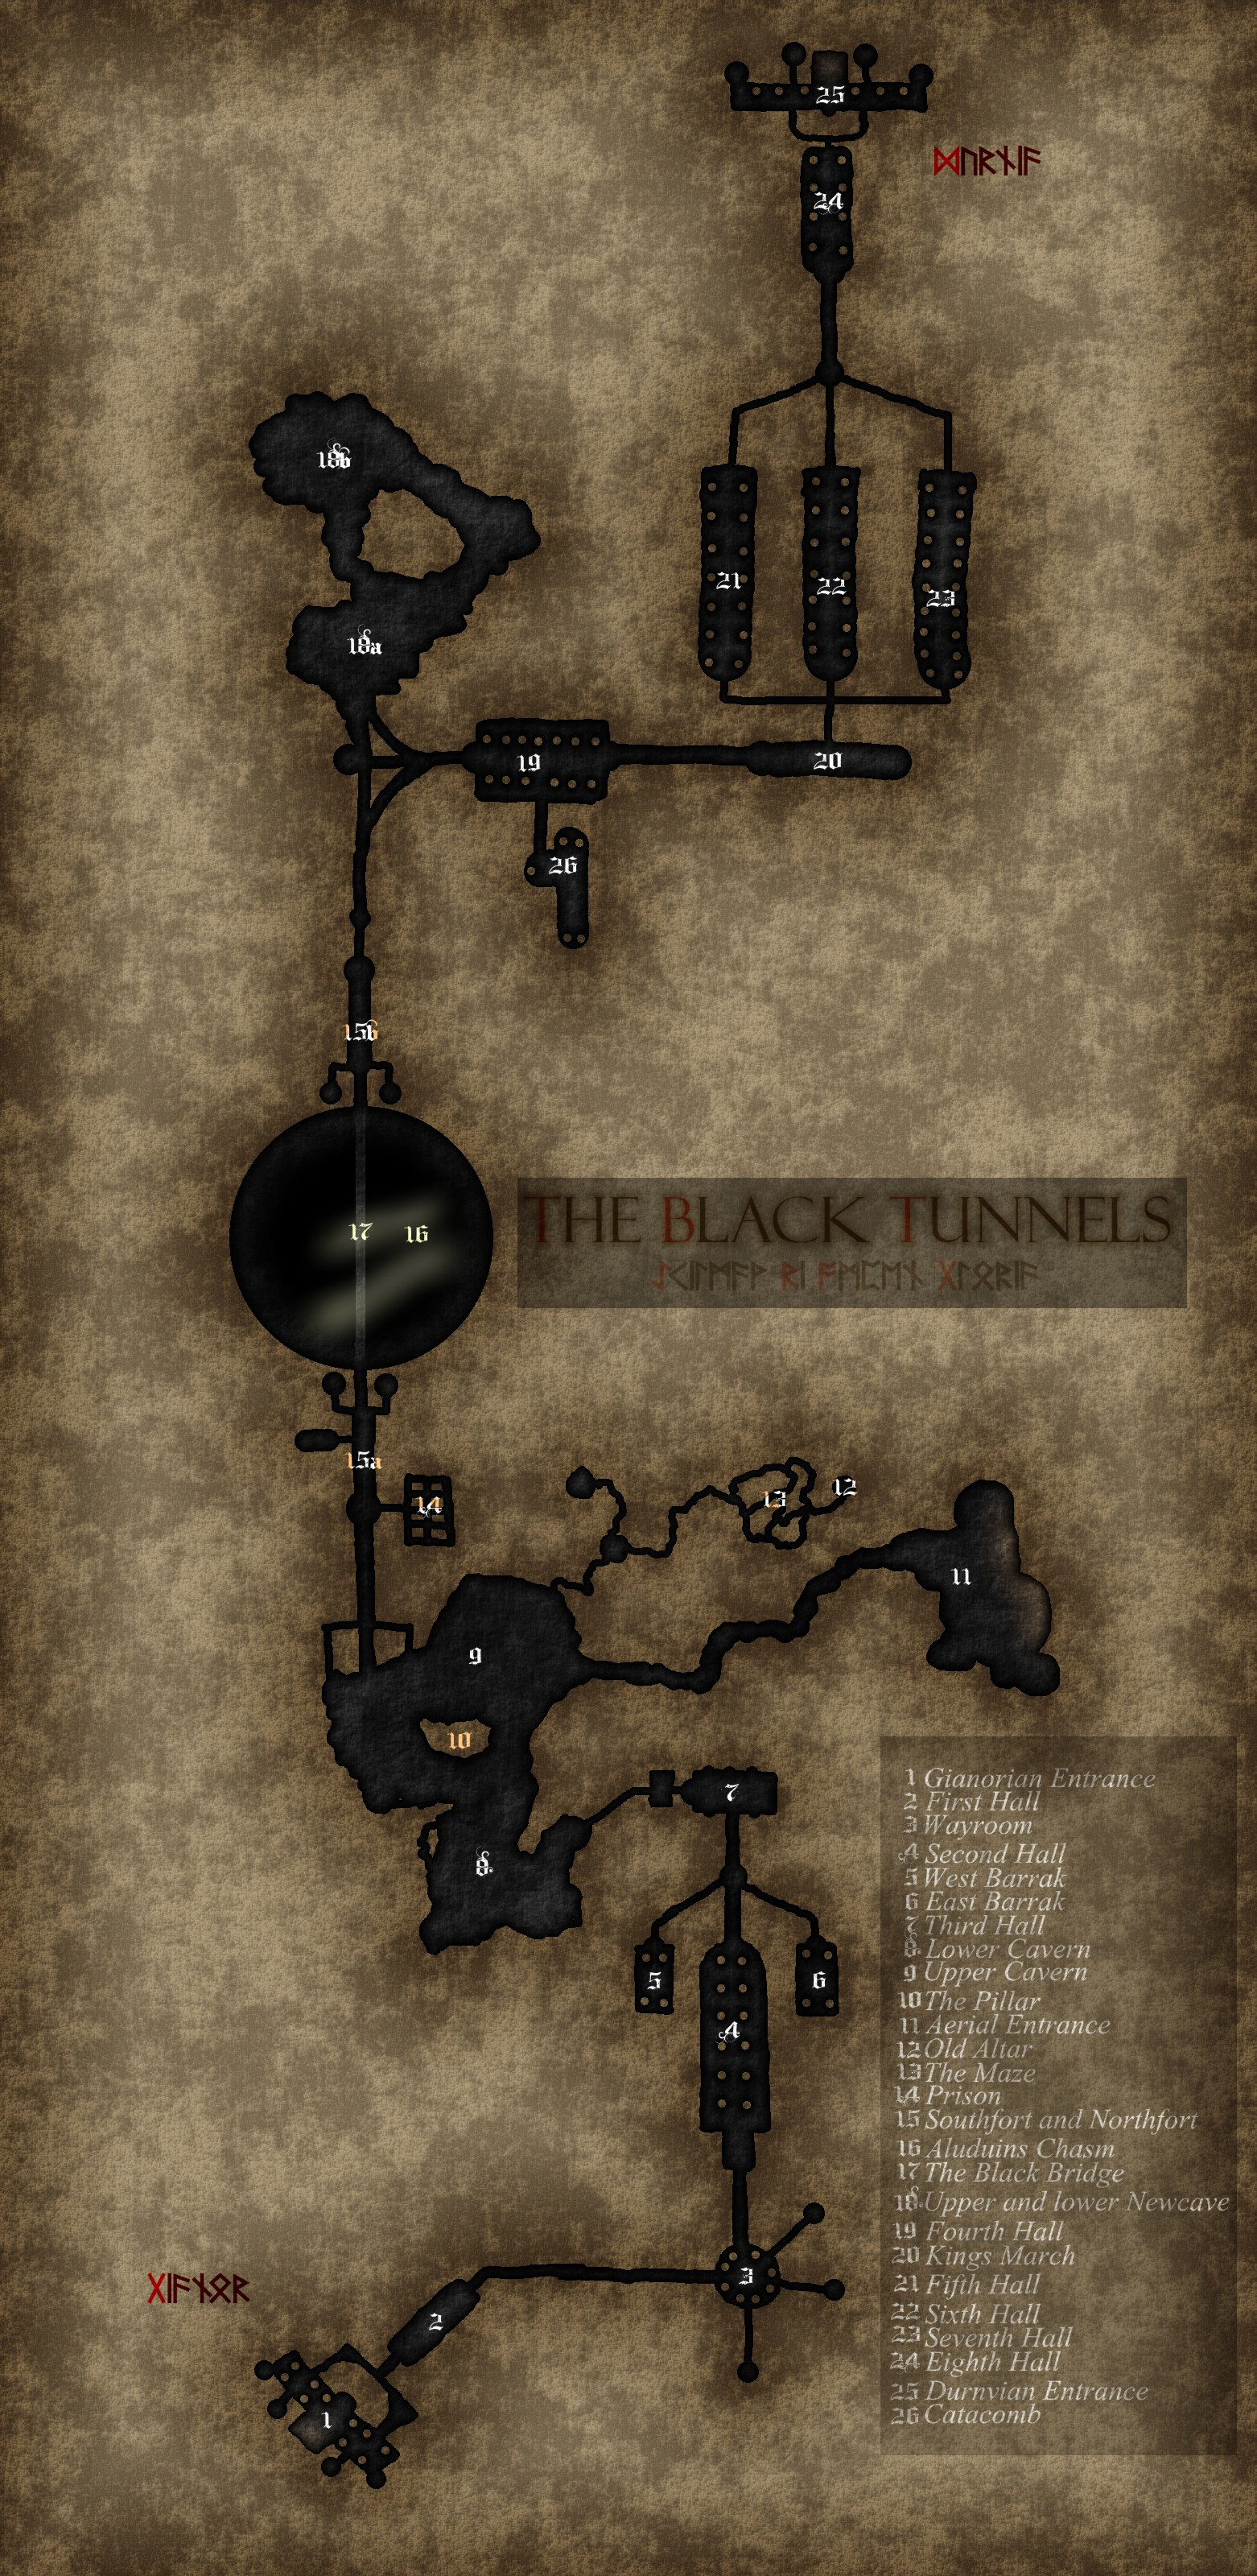 The Black Tunnels